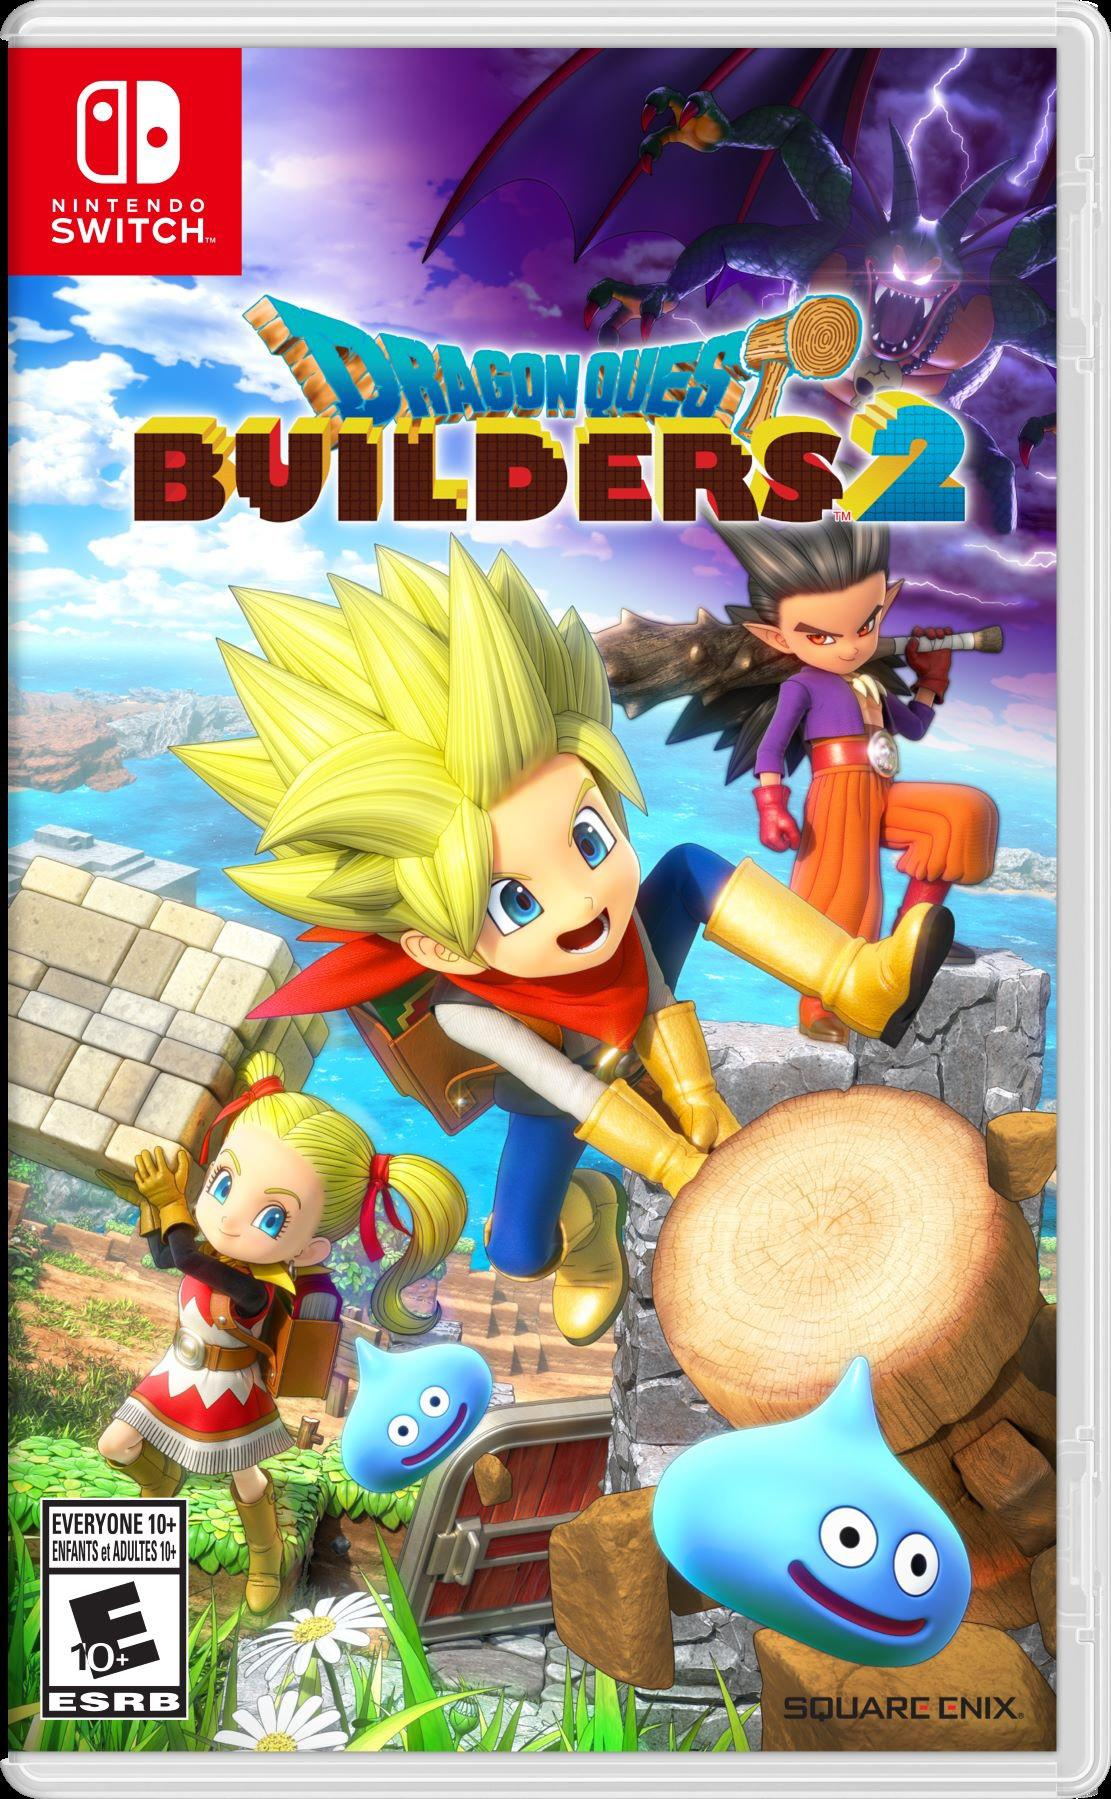 Nintendo News: DRAGON QUEST BUILDERS 2 Digital Pre-Purchase Starts Today; DLC Coming Soon